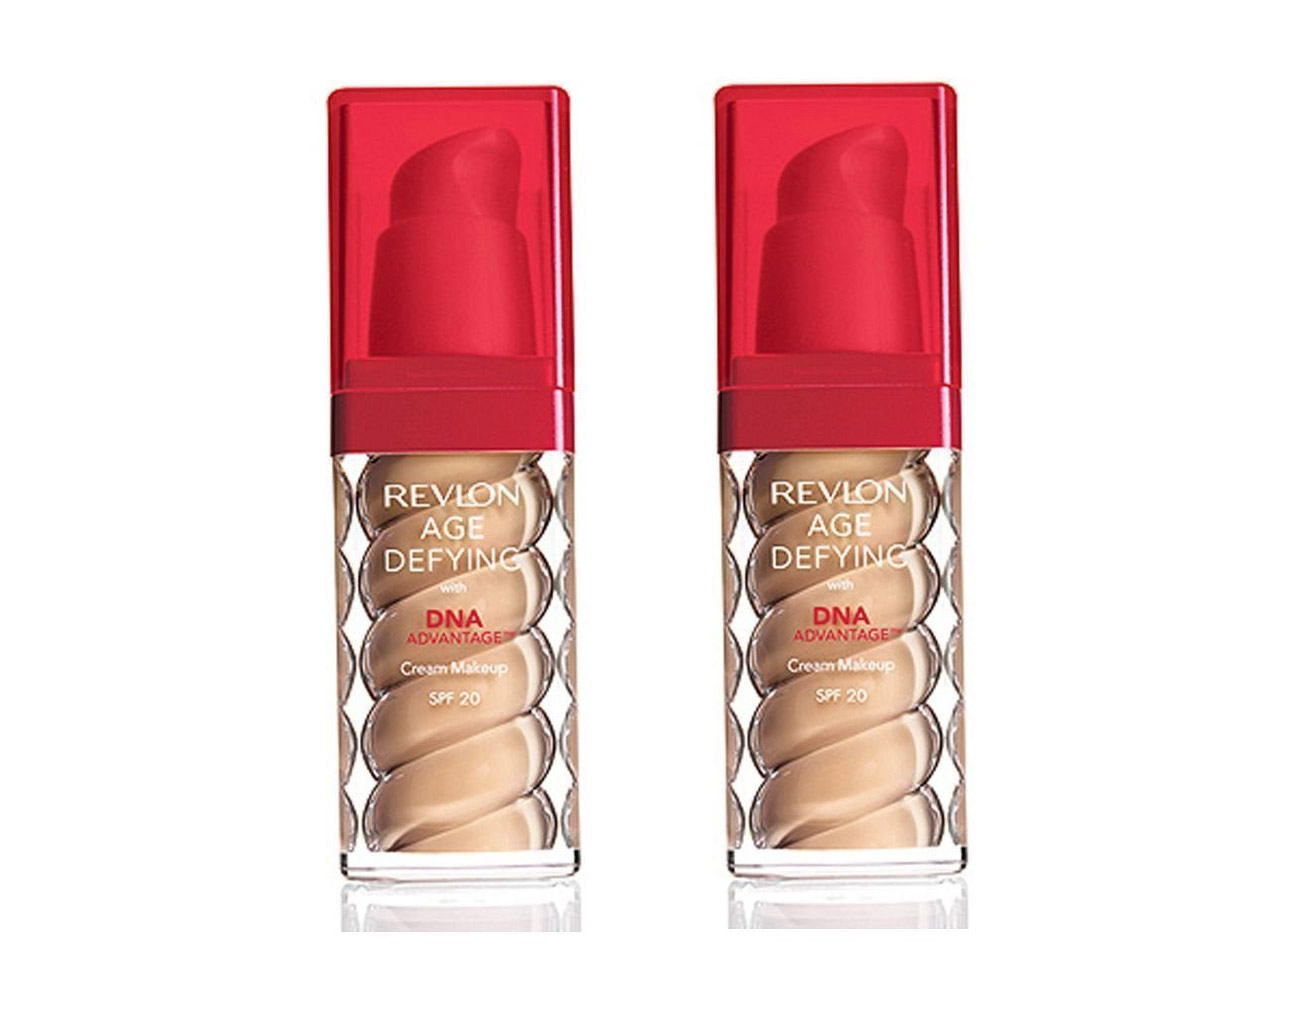 Get $9 With Revlon Class Action Settlement (no proof needed)